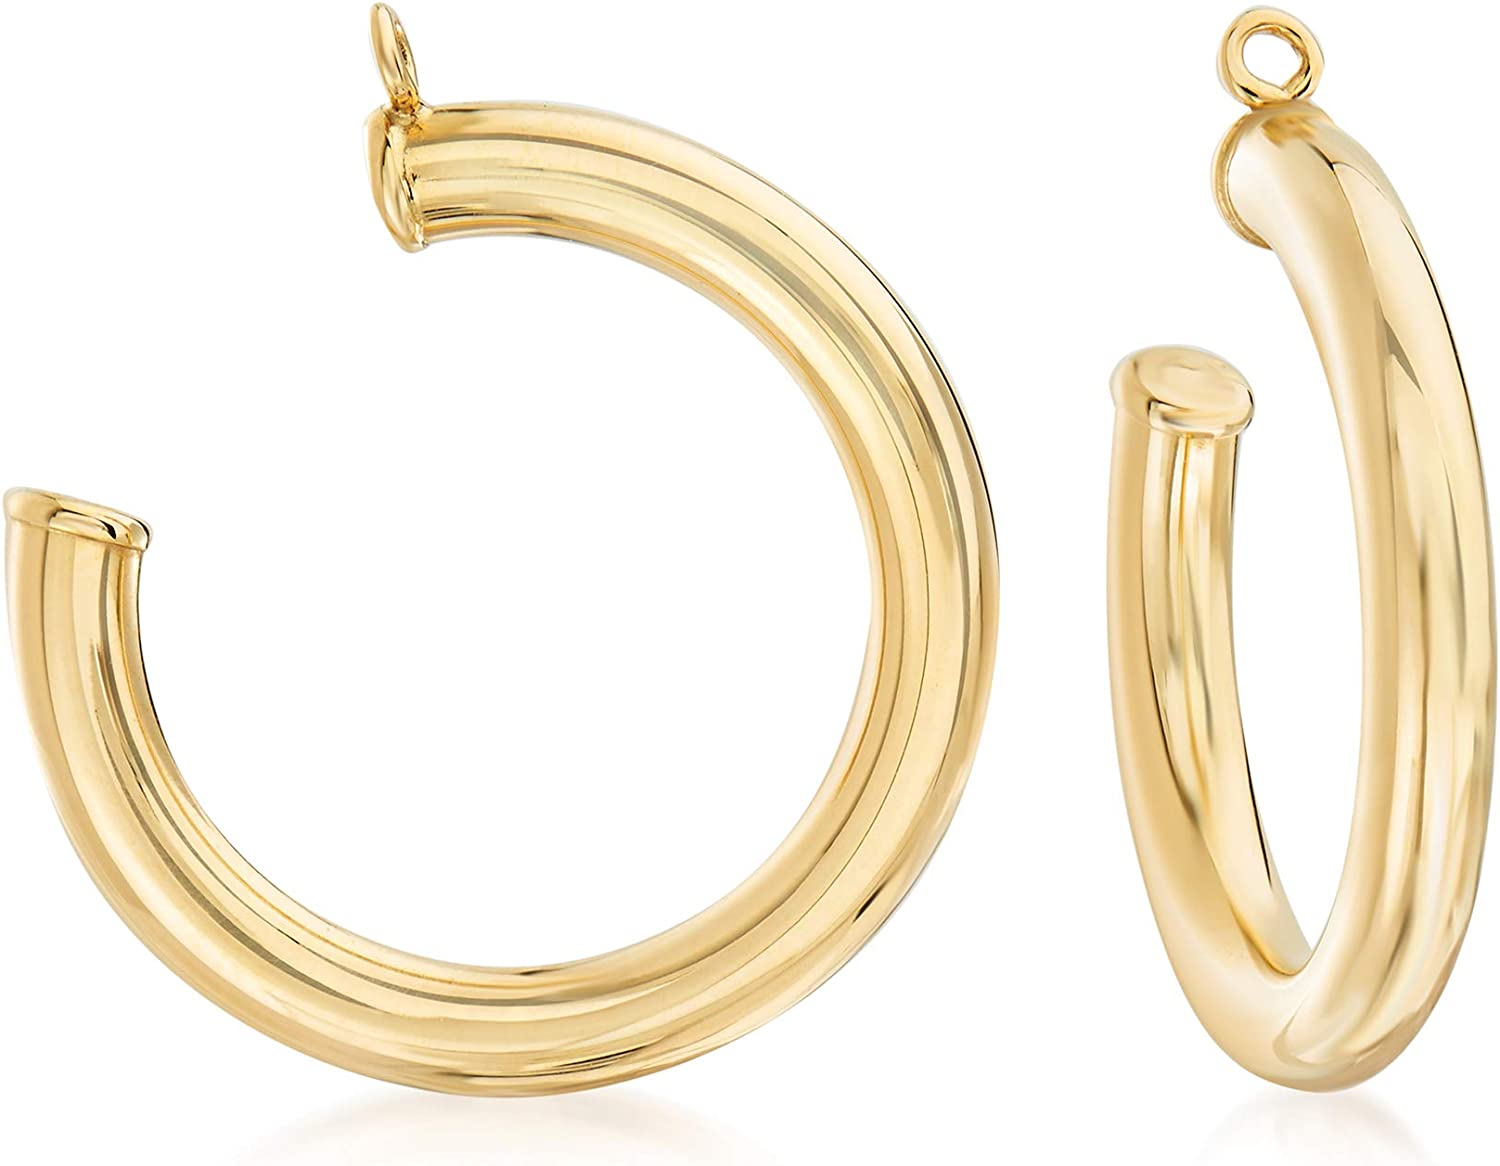 Ross-Simons 14kt Yellow Gold Hoop Earring Jackets. 7/8 inches